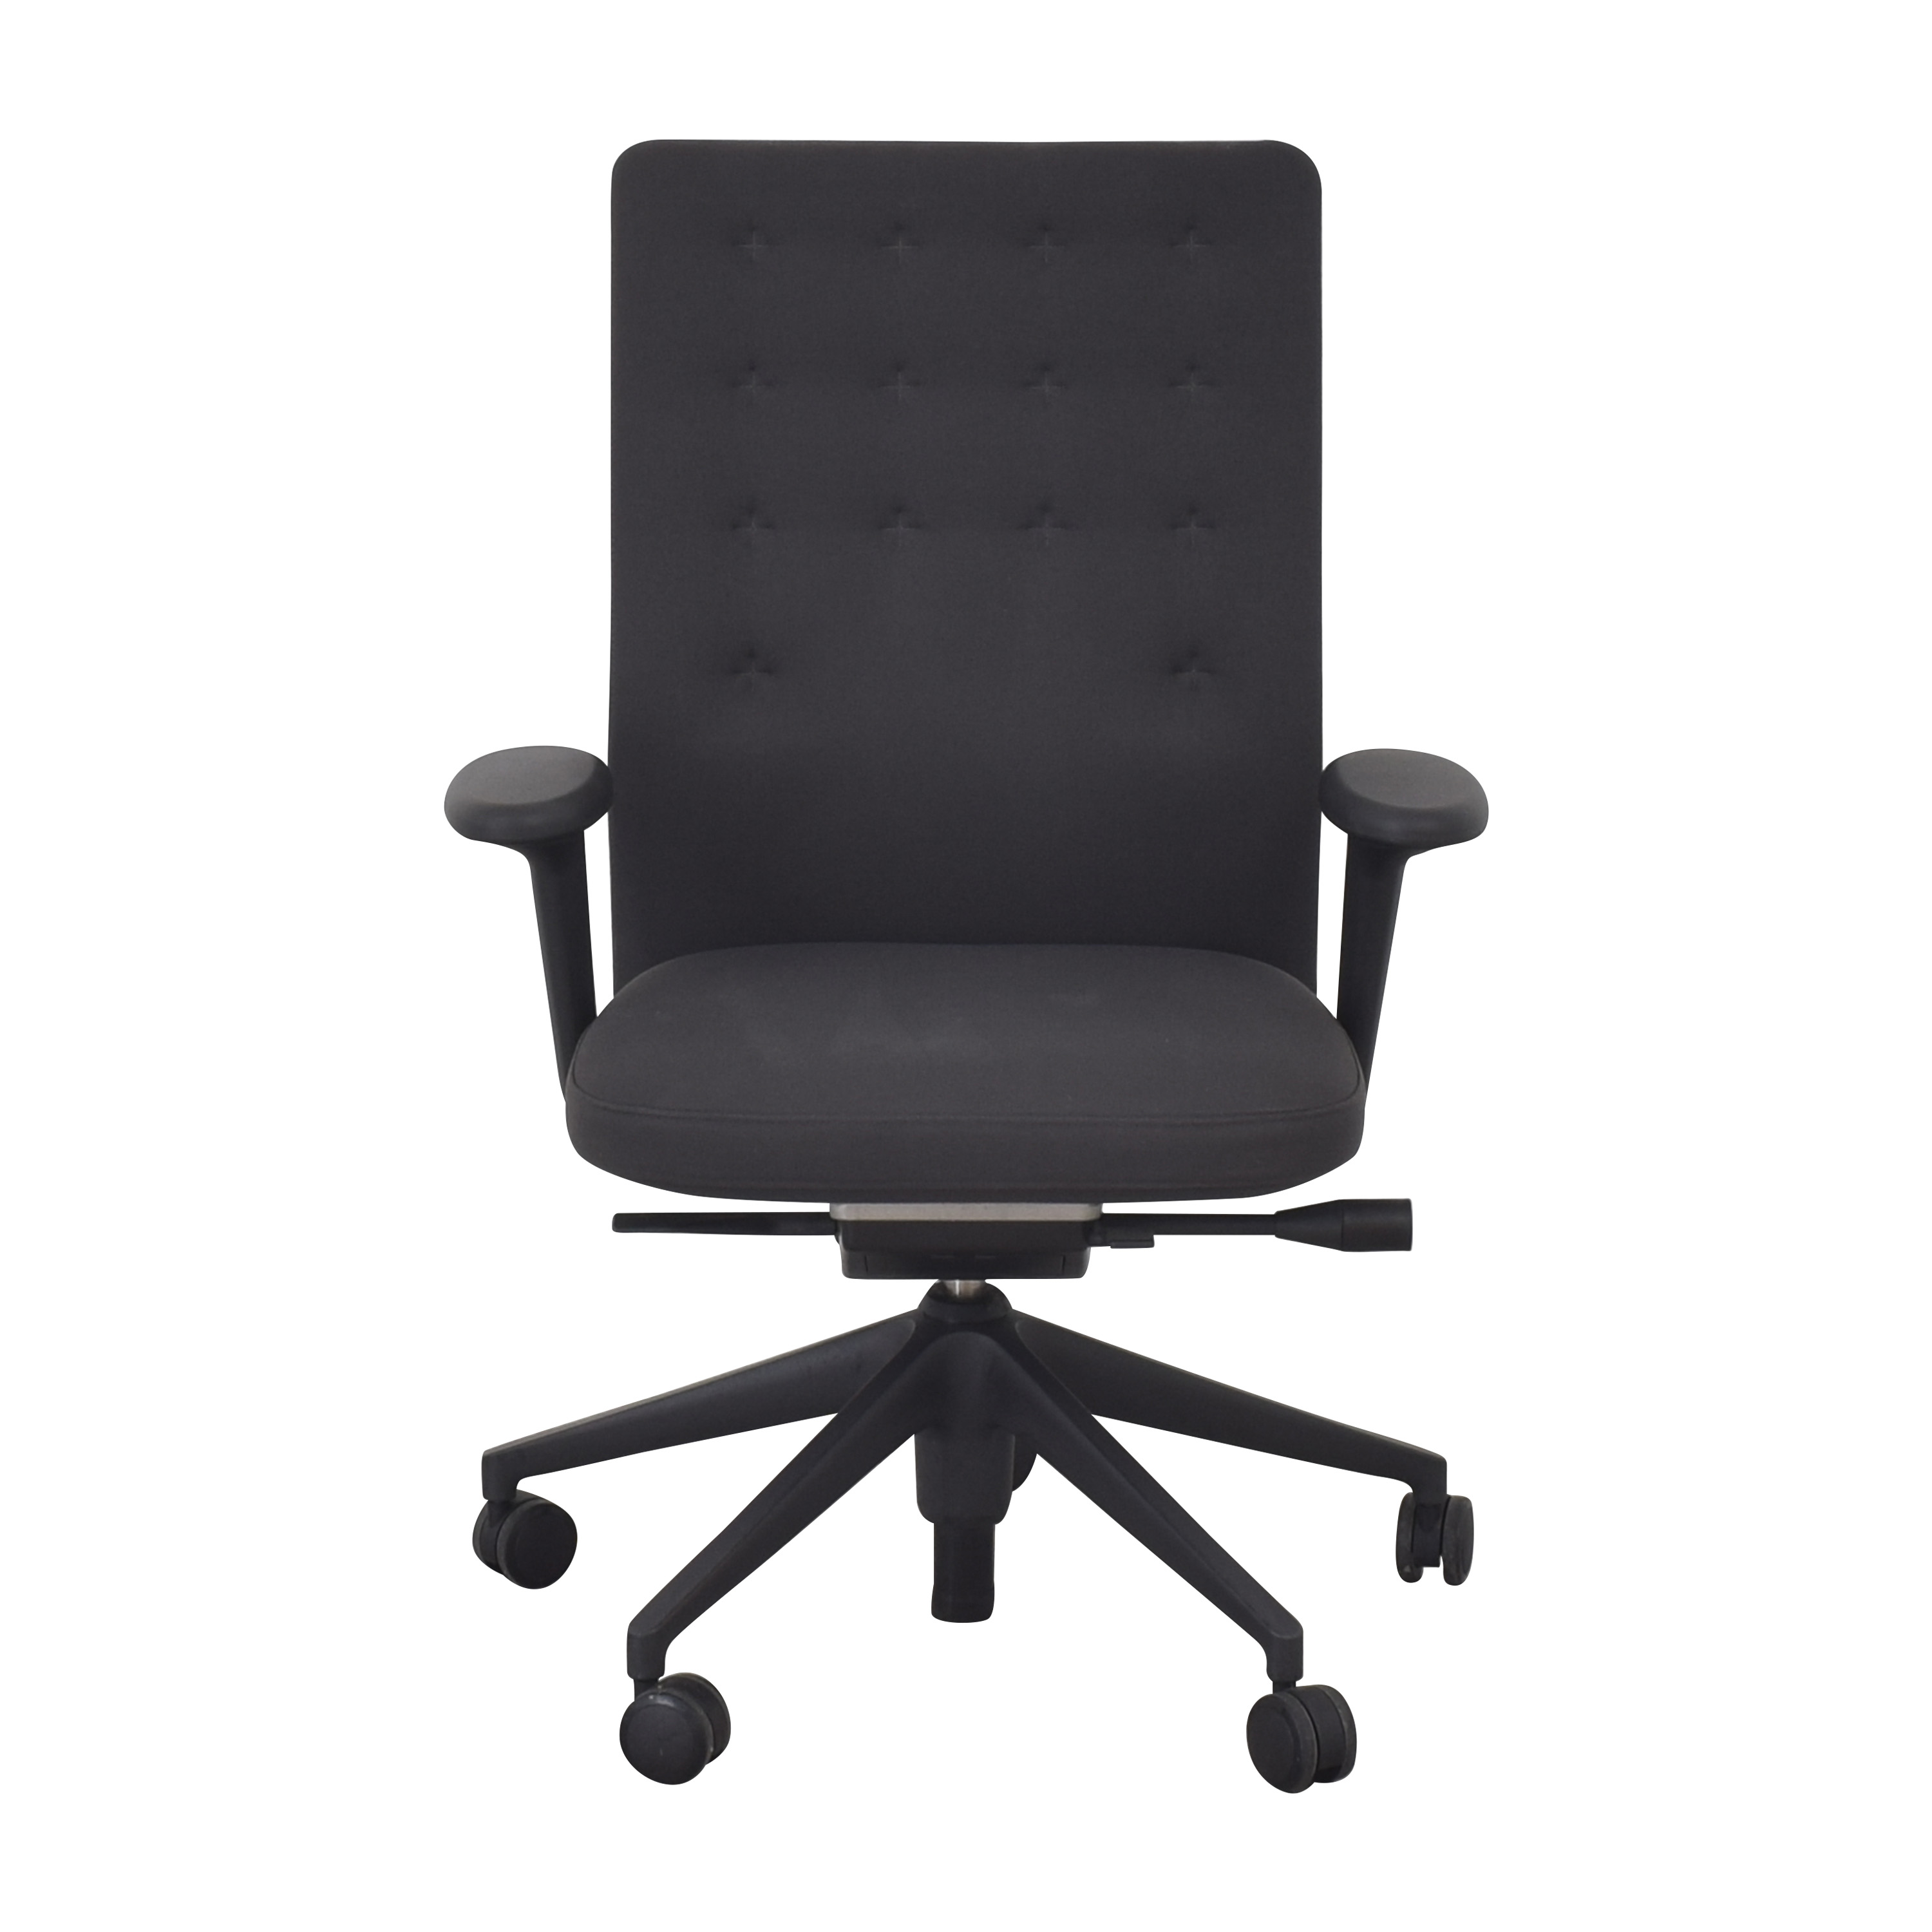 Vitra ID Trim Office Chair / Home Office Chairs